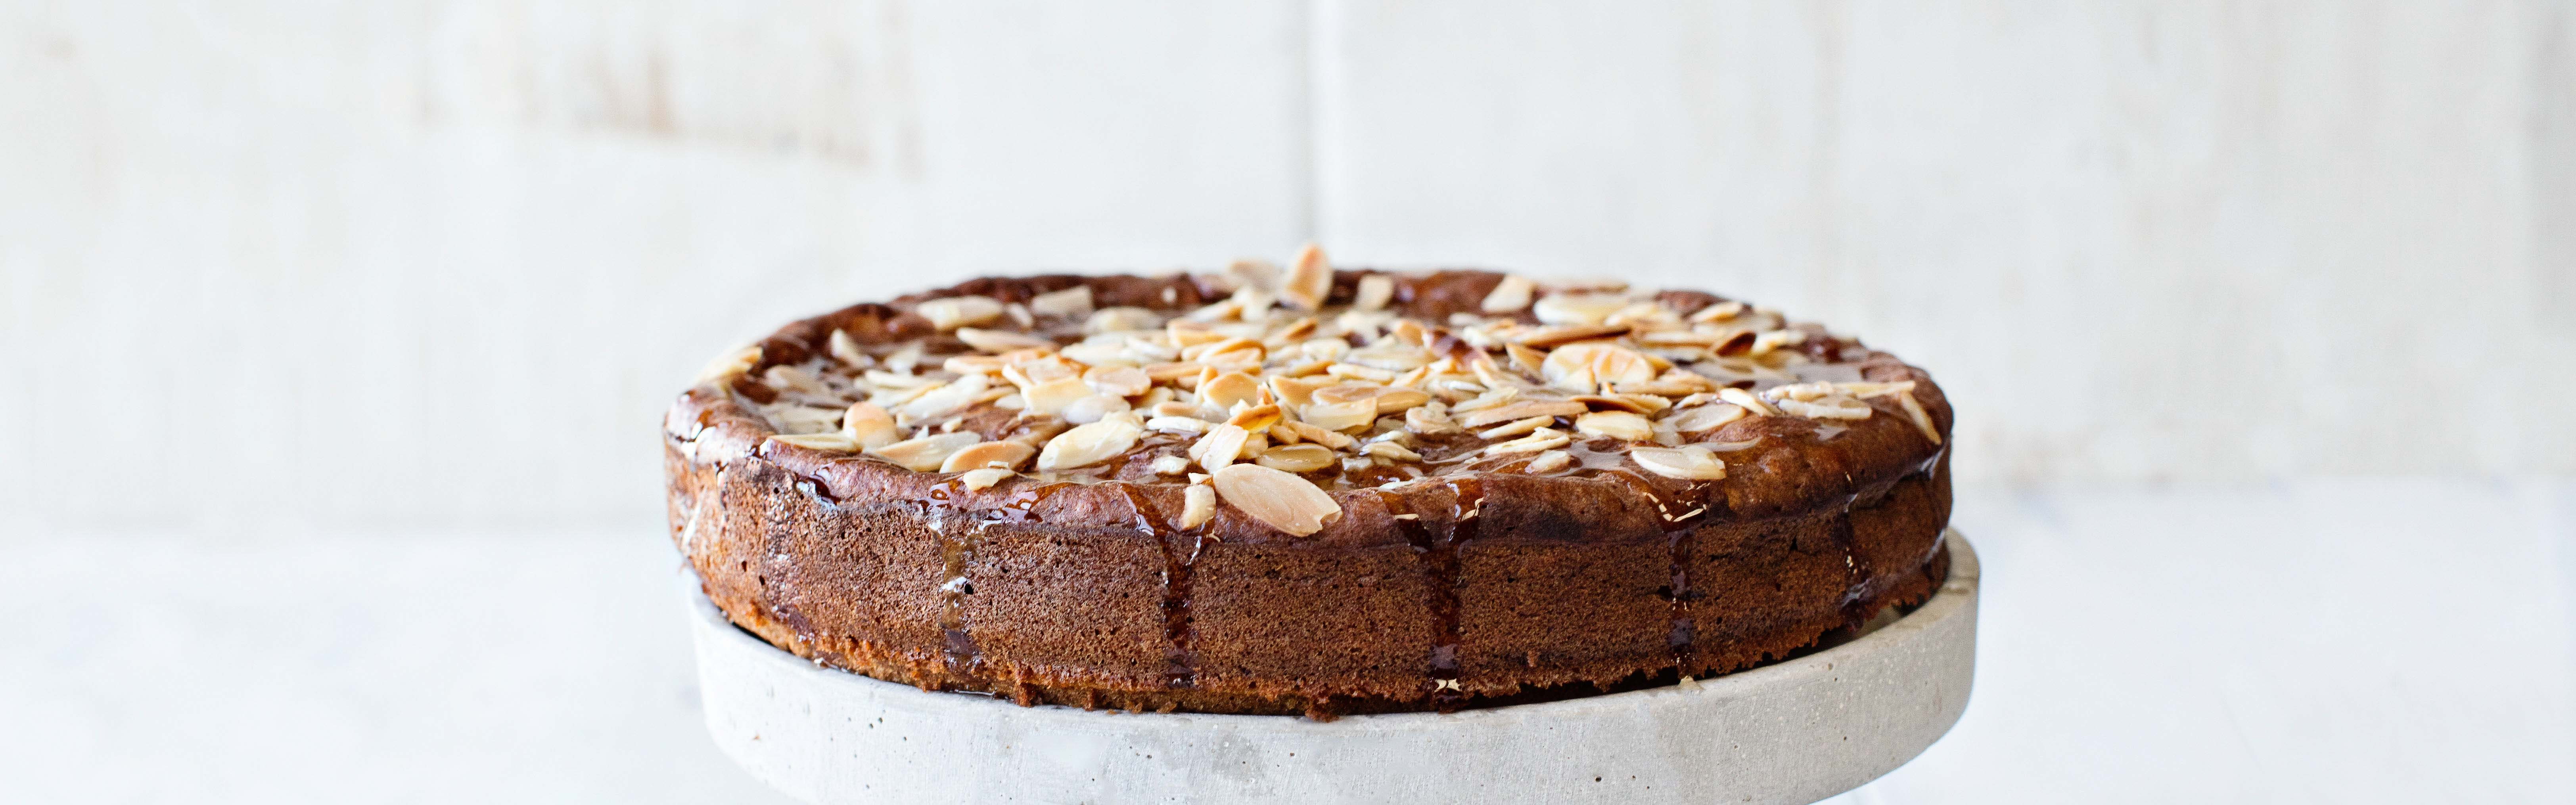 <p>While the original  recipe for almond cake had 200 g butter and 200 g sugar, this recipe greatly reduces both ingredients by blending in a puree made of prunes.</p>